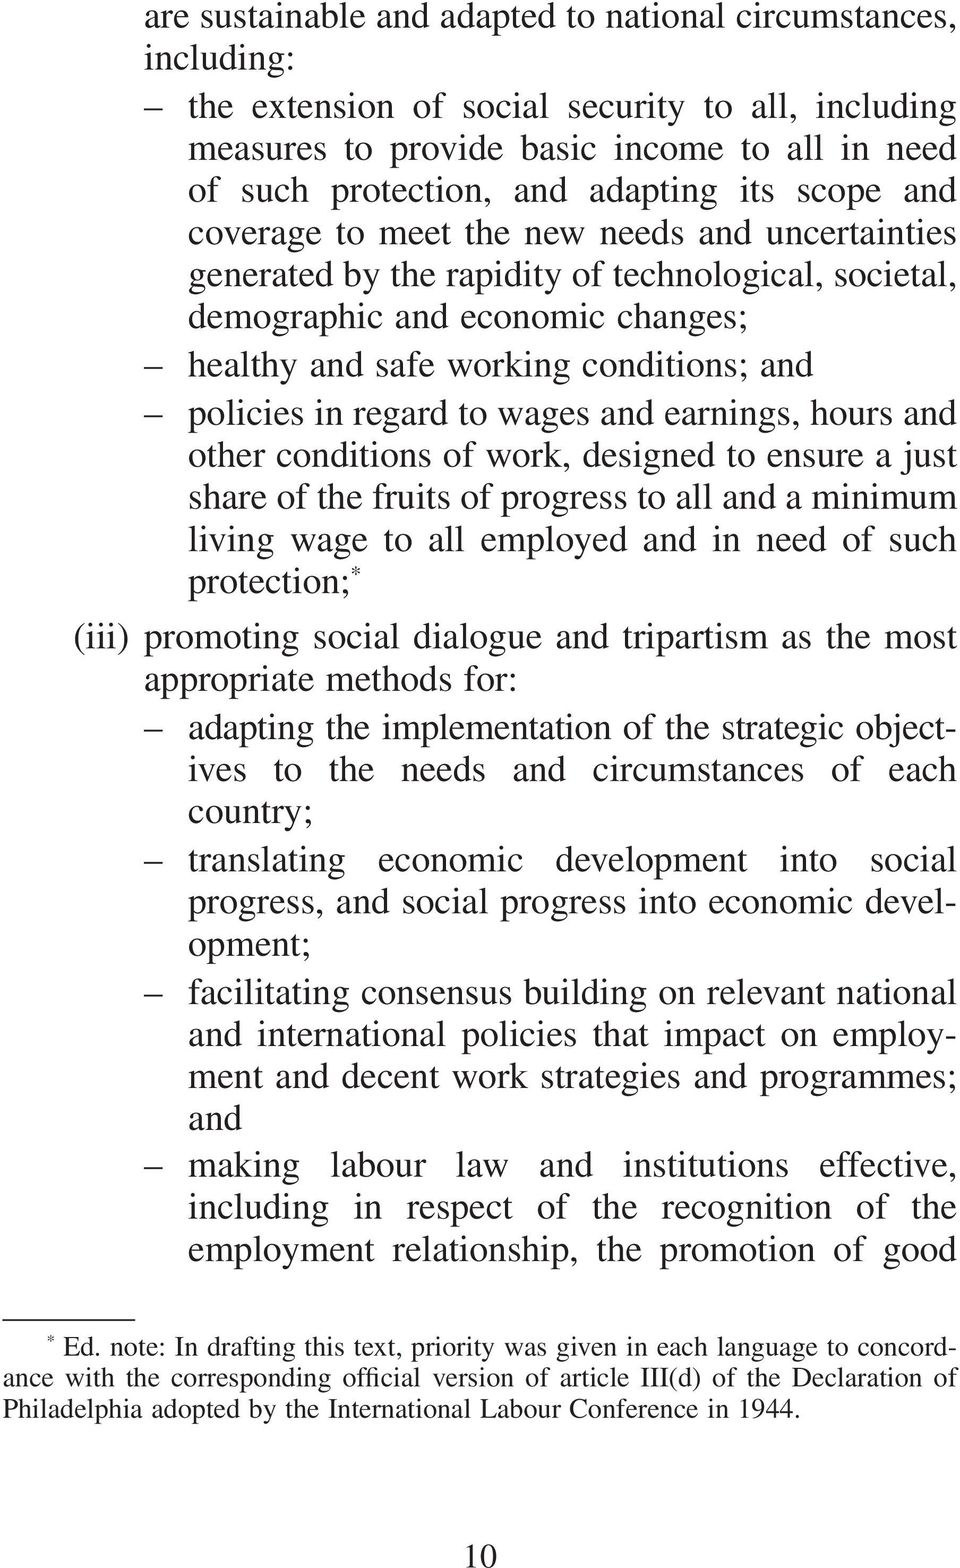 policies in regard to wages and earnings, hours and other conditions of work, designed to ensure a just share of the fruits of progress to all and a minimum living wage to all employed and in need of